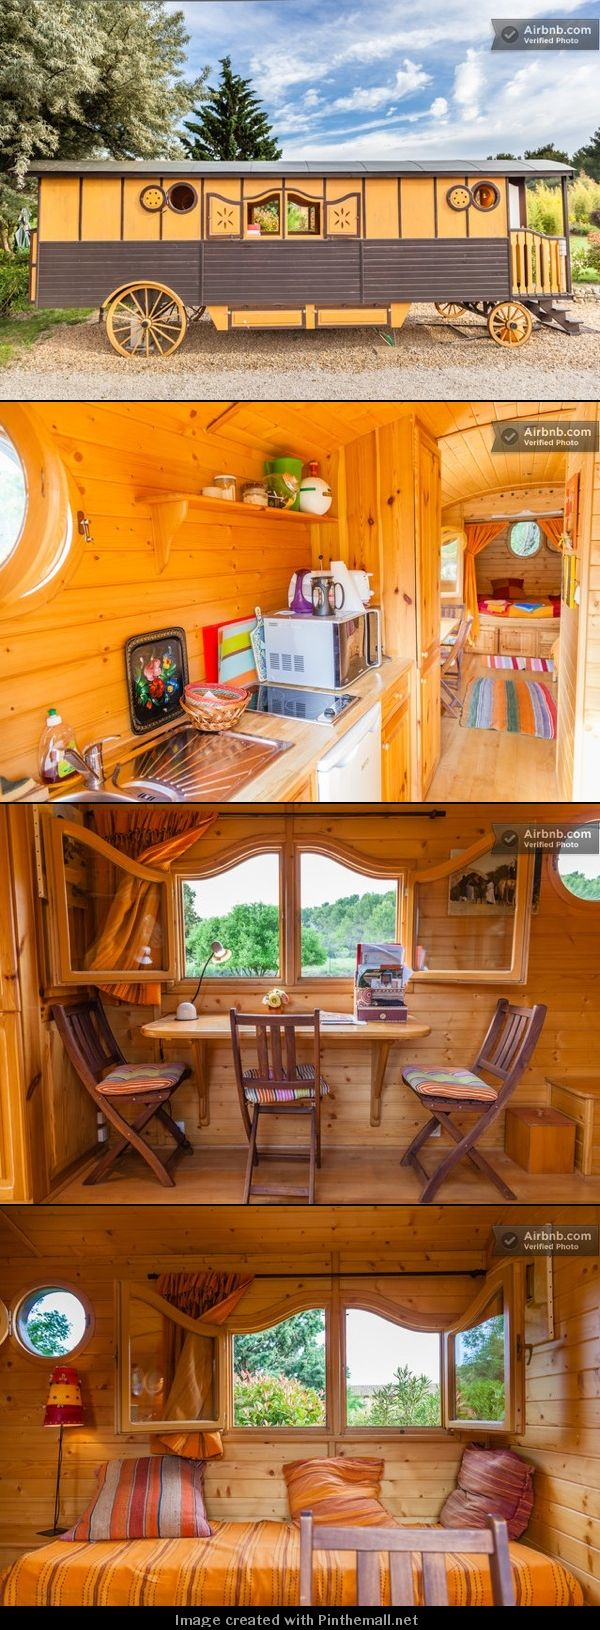 Nice caravan interior... - created via http://pinthemall.net